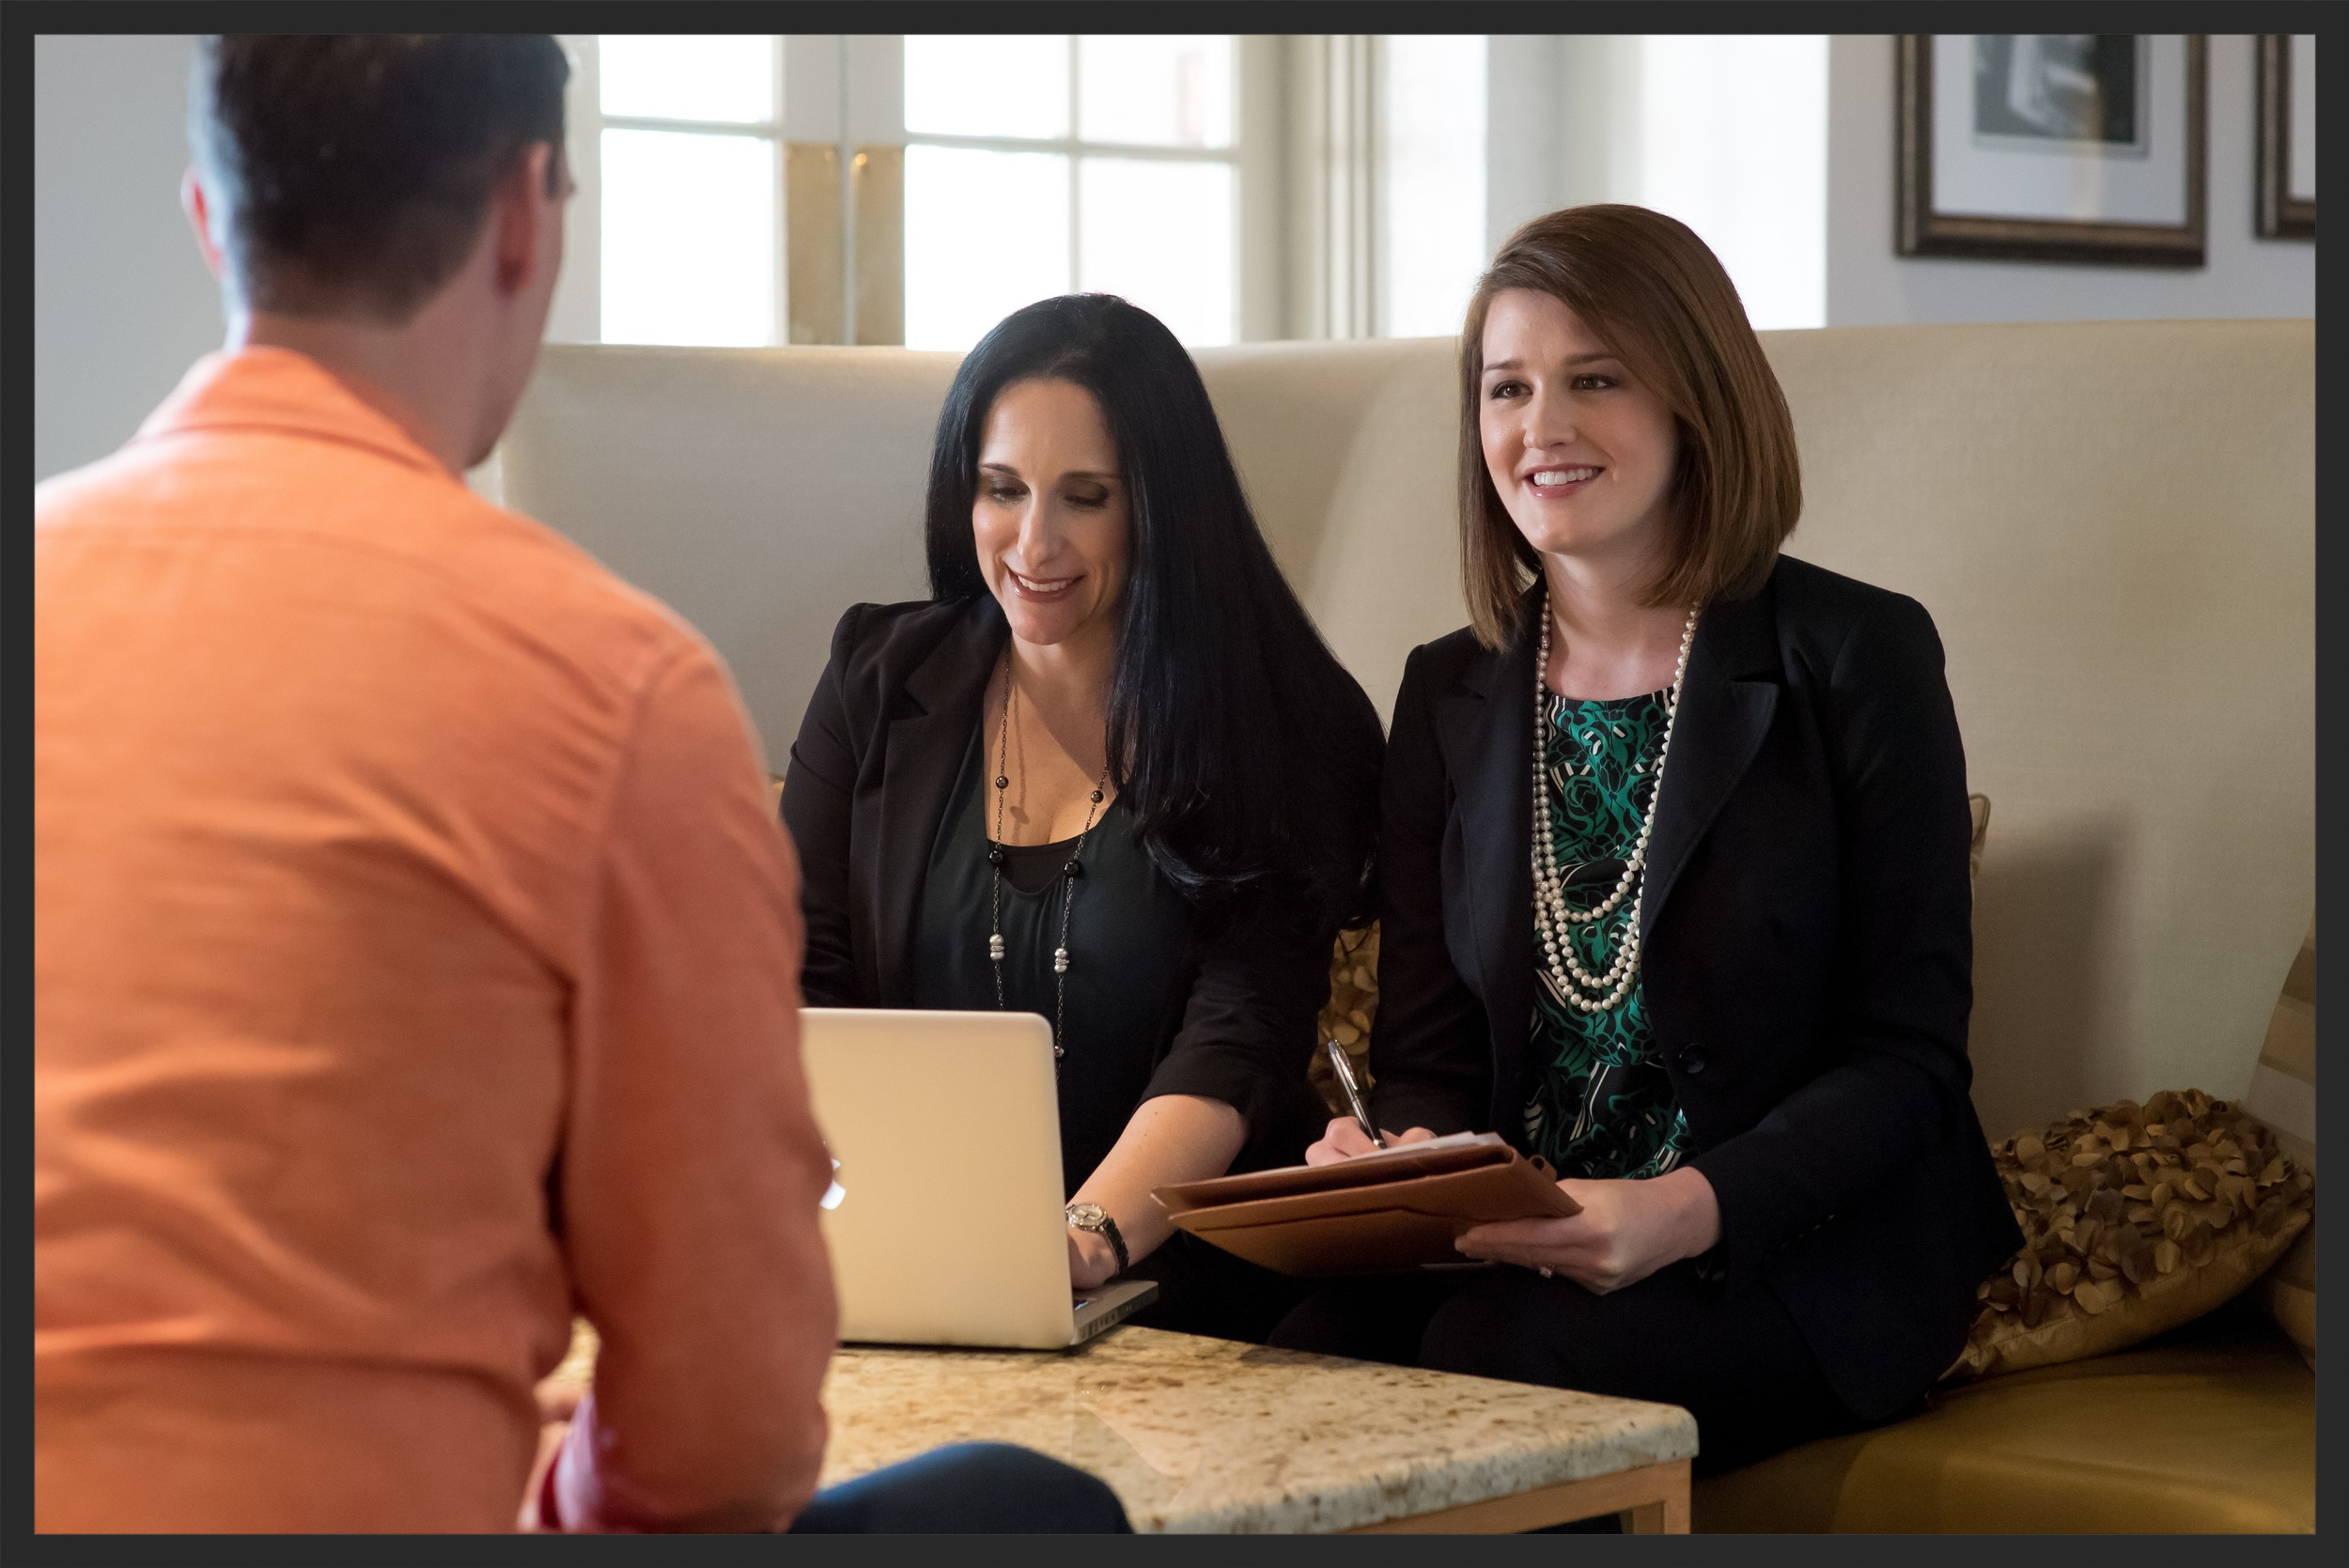 Lissette Penrod and Jessica Stravino meet with every accounting and finance candidate to discuss open job opportunities in accounting and finance in the Tampa Bay Area, how the recruiting process works, their backgrounds in recruiting and job interviewing tips.